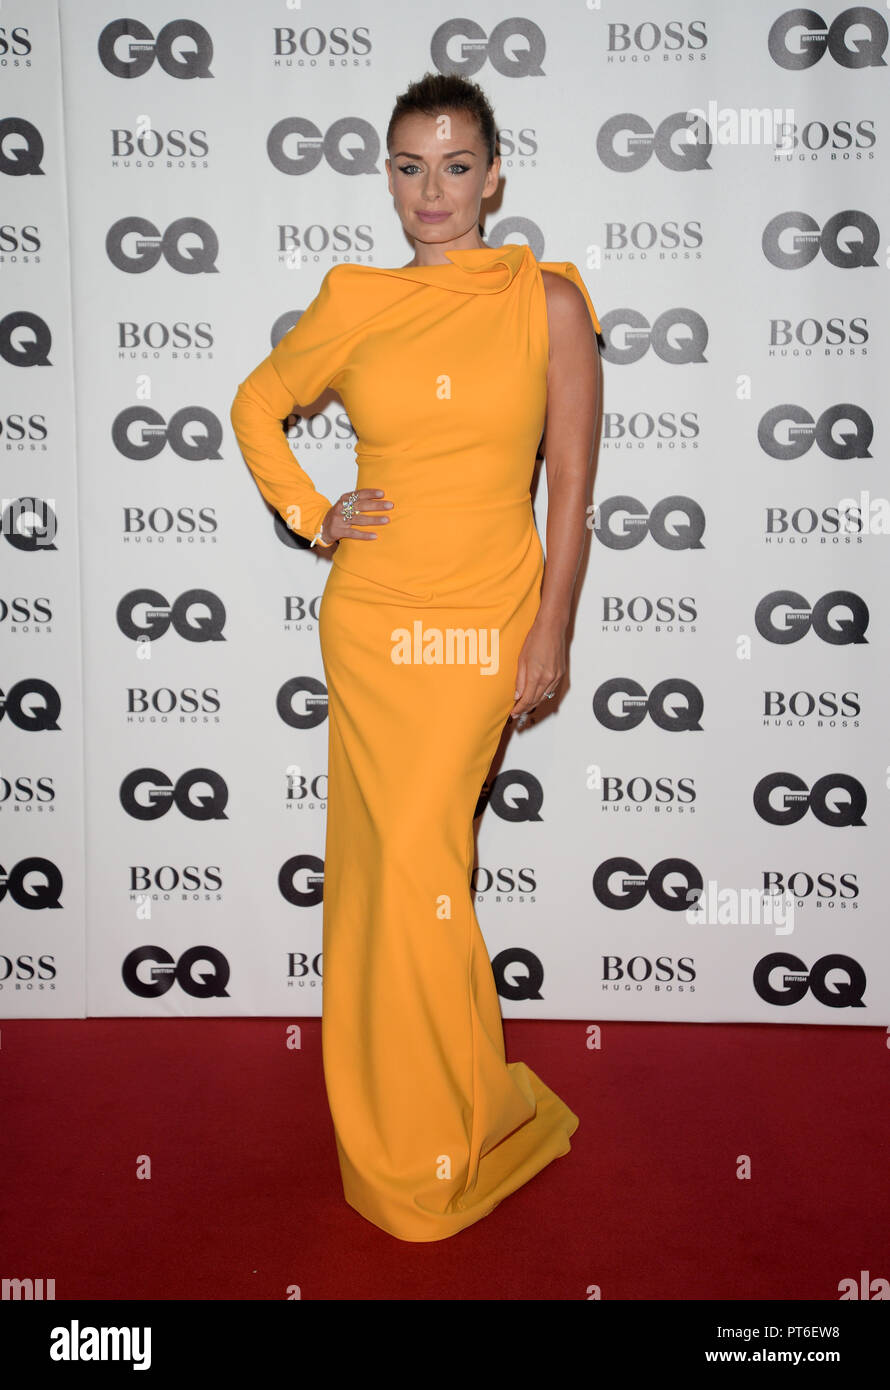 GQ Men Of The Year Awards at The Tate Modern  Featuring: Katherine Jenkins Where: London, United Kingdom When: 05 Sep 2018 Credit: Tony Oudot/WENN Stock Photo